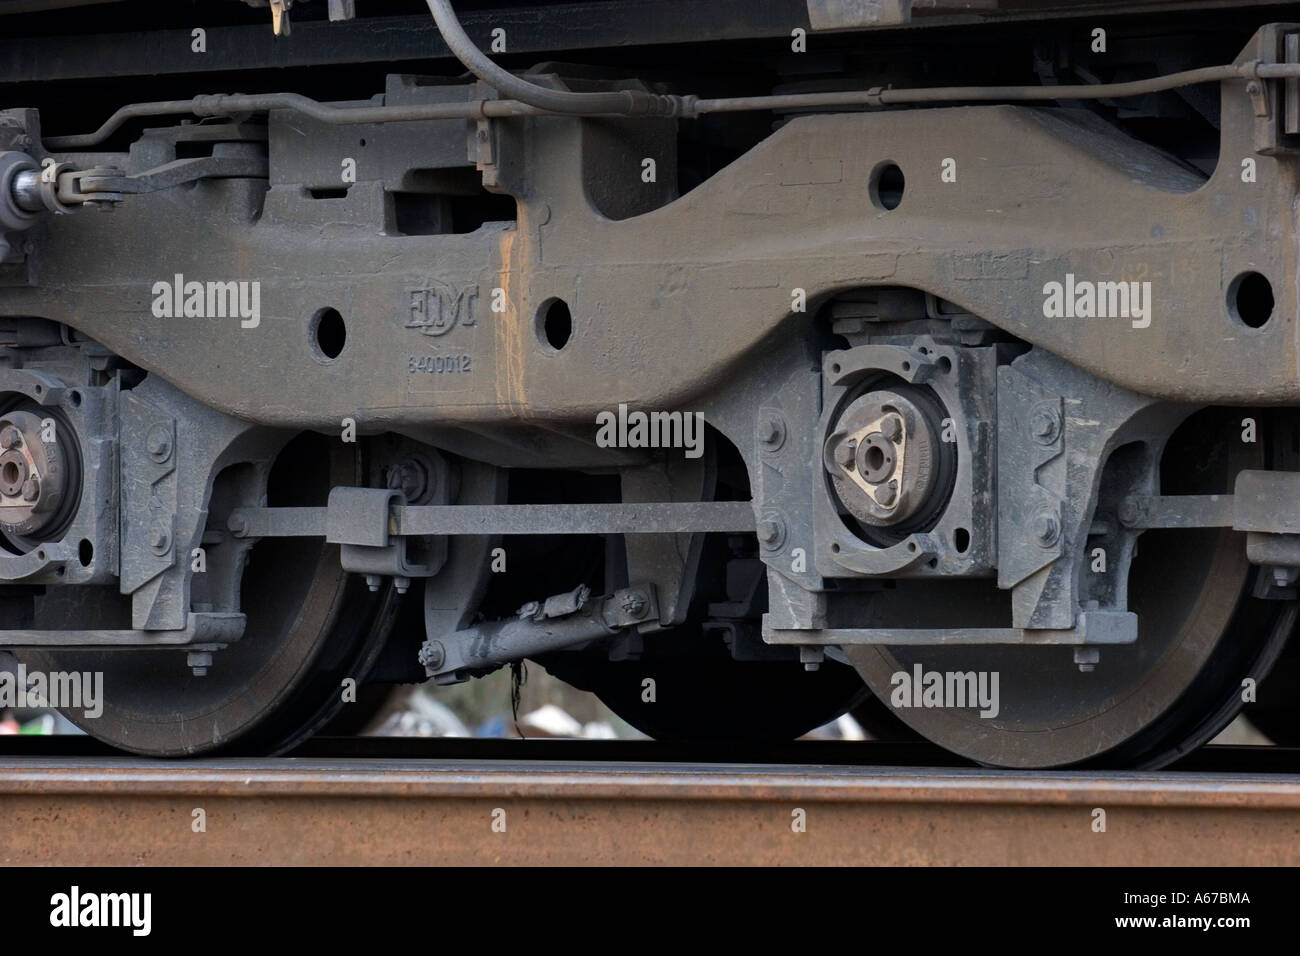 Diesel electric locomotive trucks or undercarriage - Stock Image